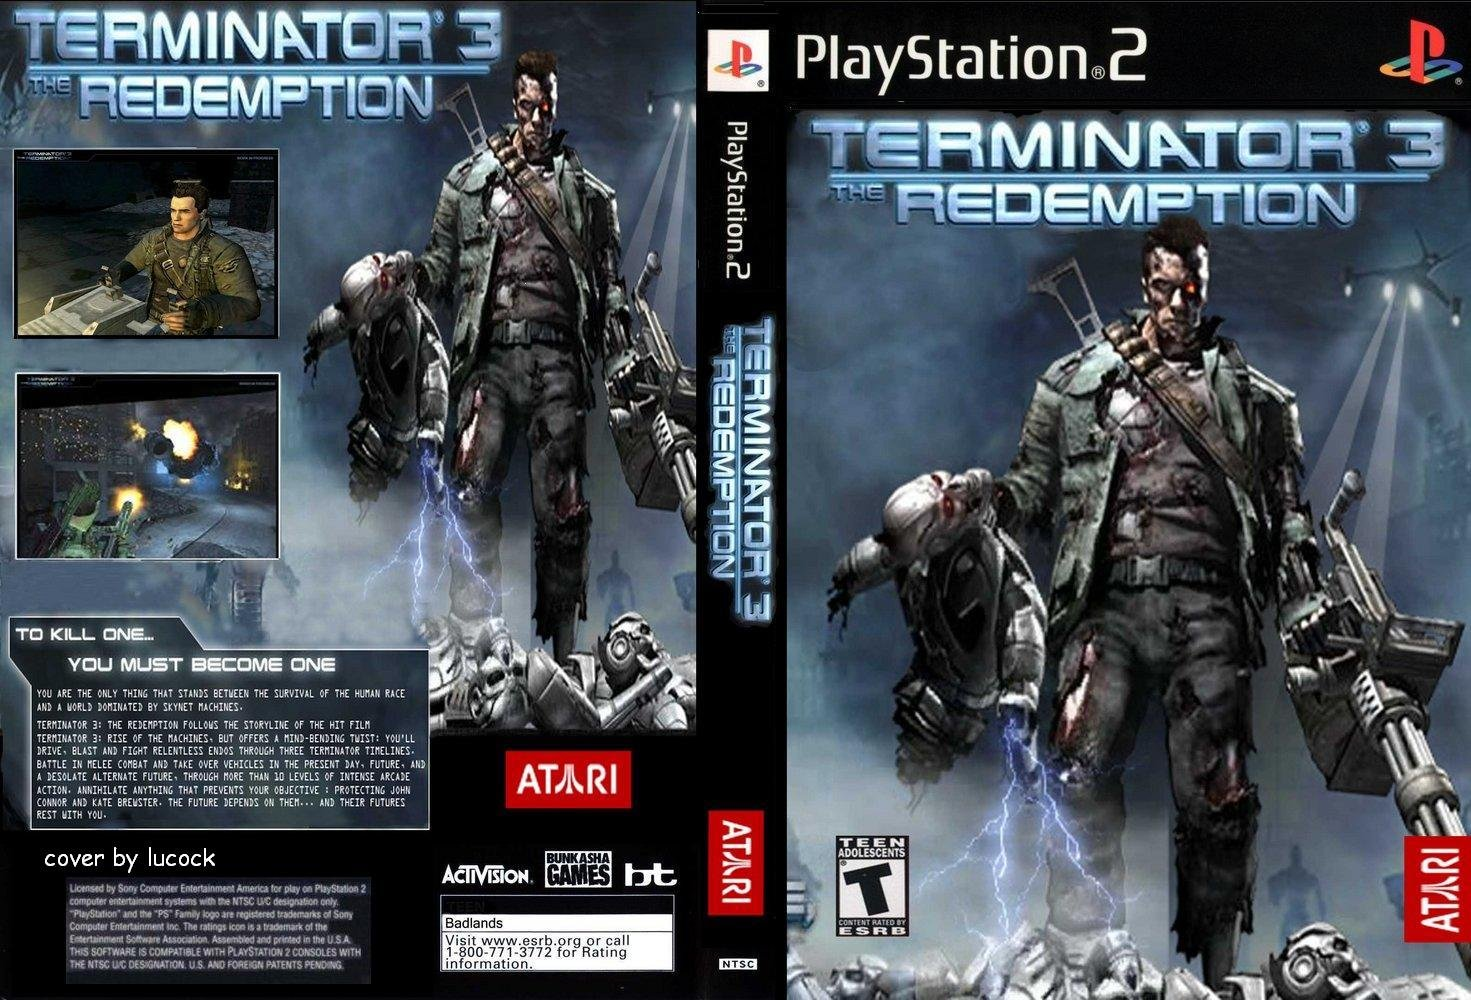 download game terminator 3 - the redemption ps2 full version iso for